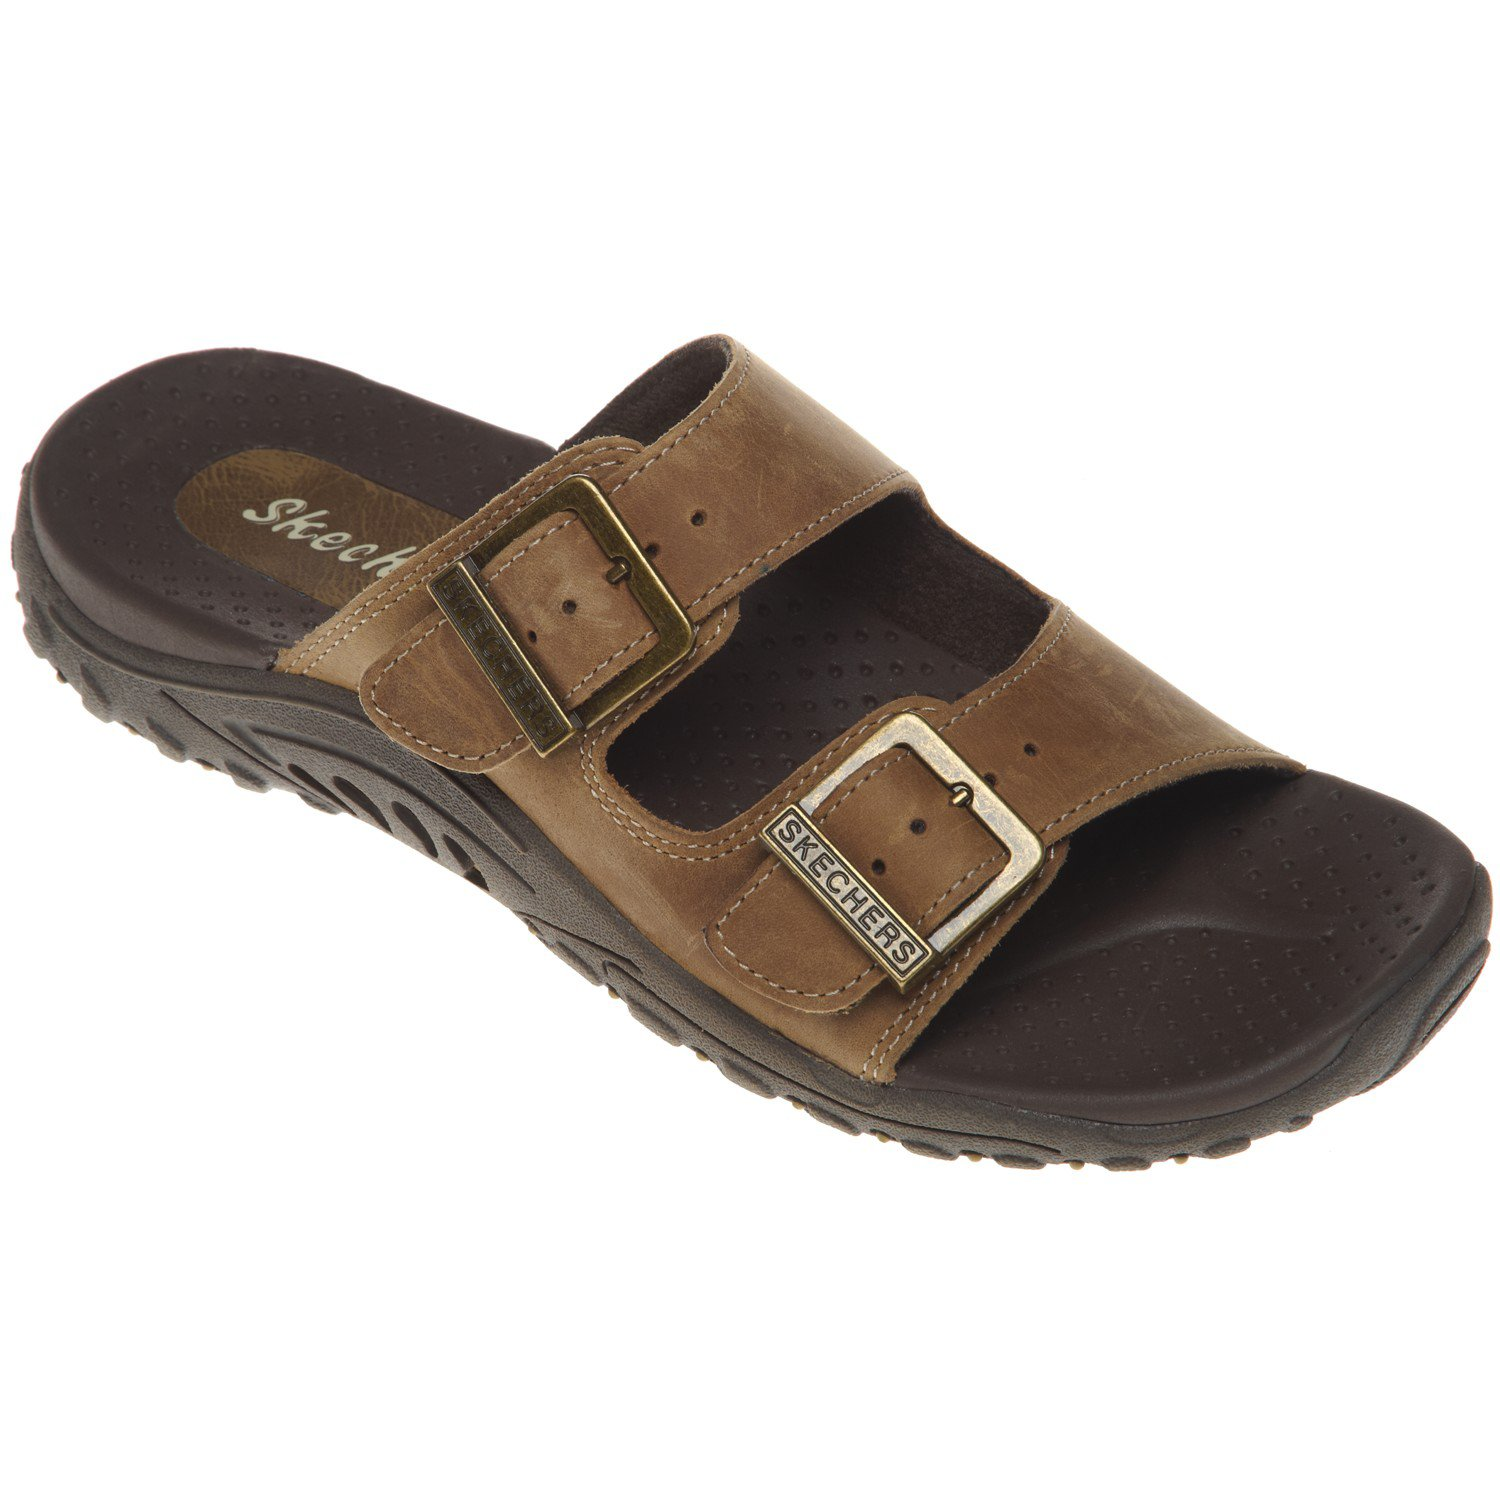 new style dcba6 2ba1d Display product reviews for SKECHERS Women s Reggae-Jammin  Sandals